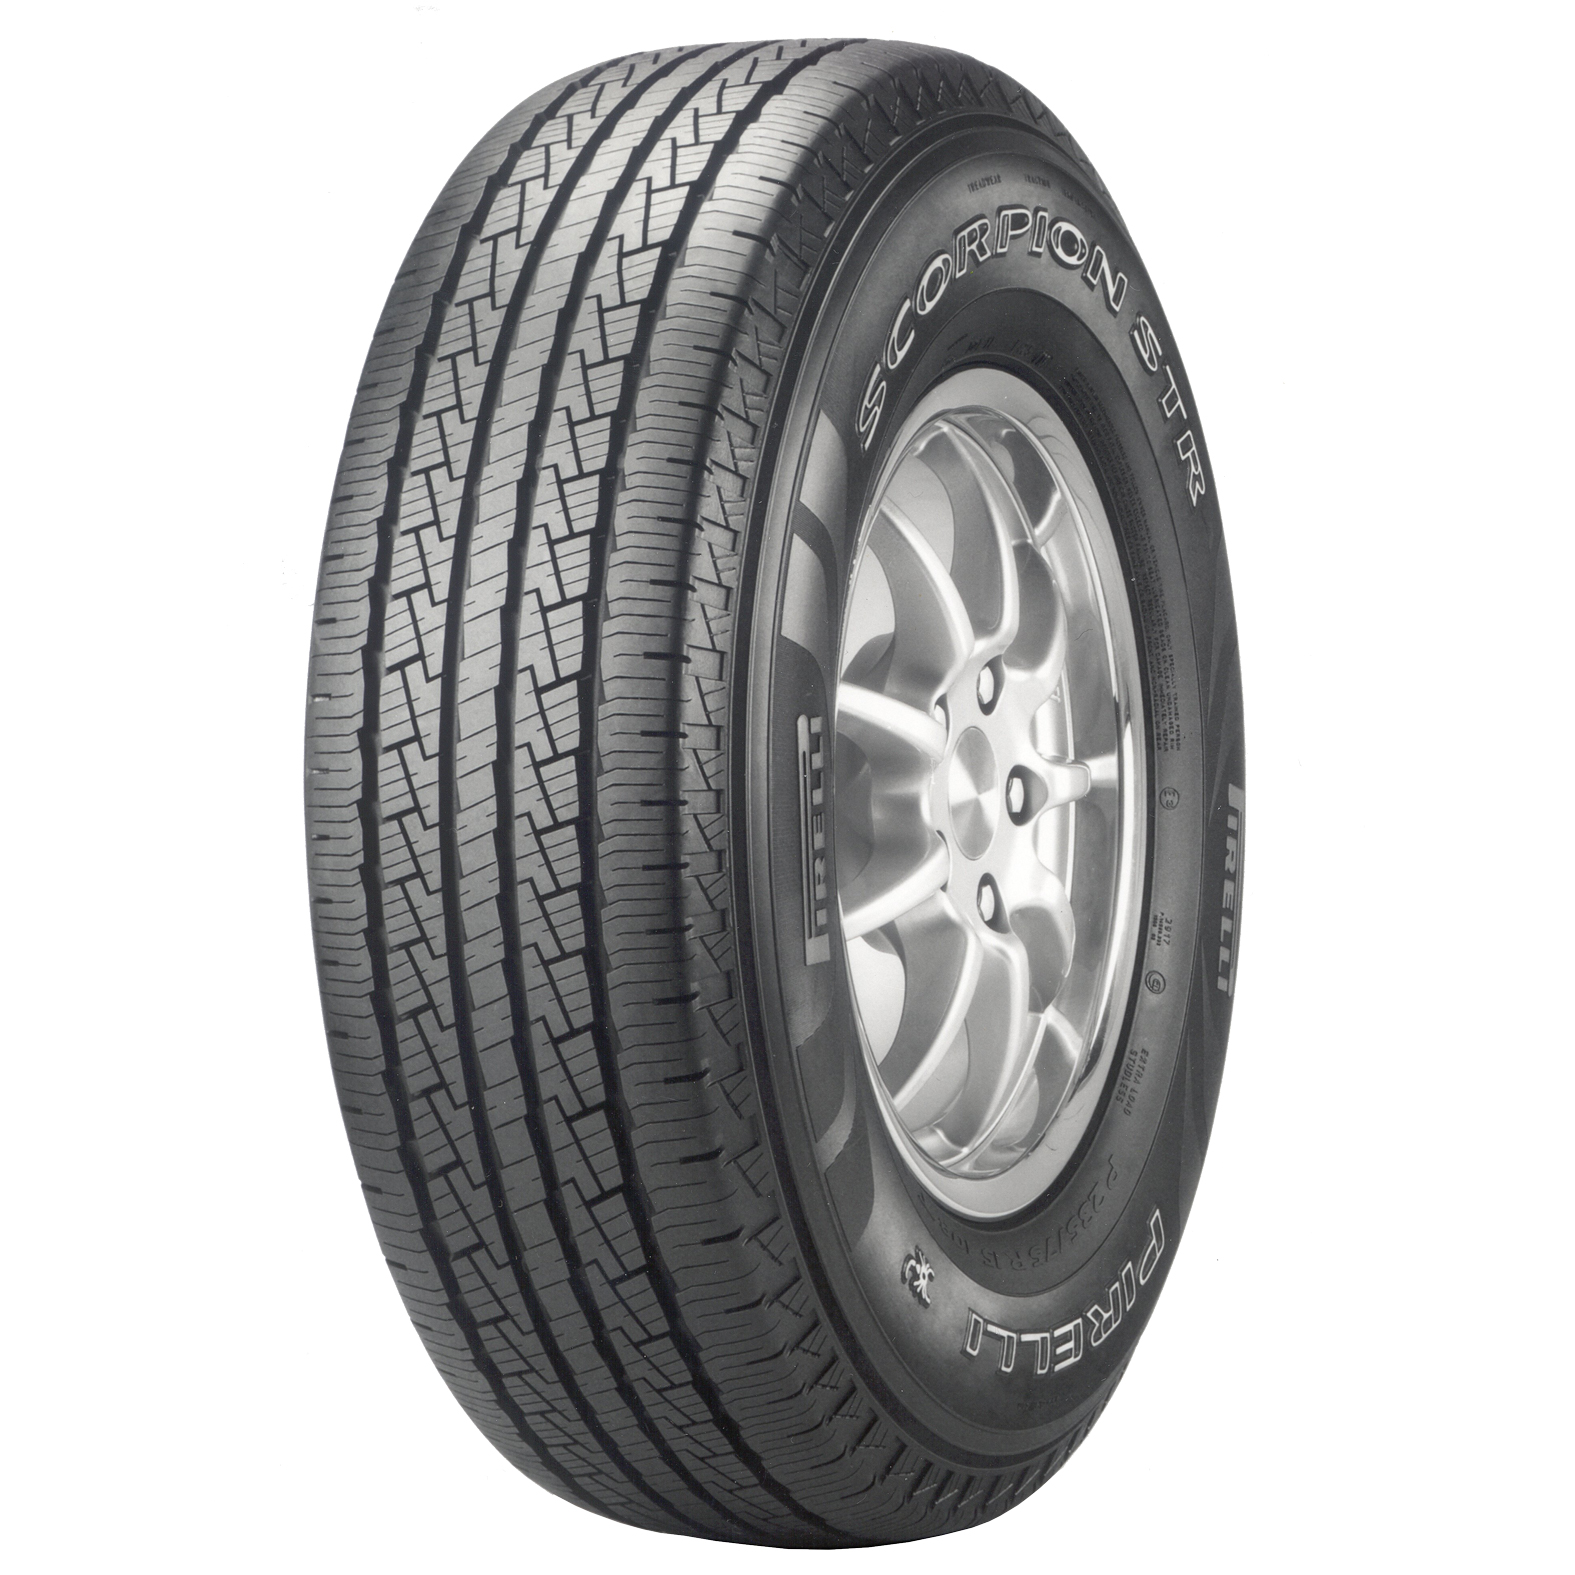 Pirelli Scorpion STR tire - angle